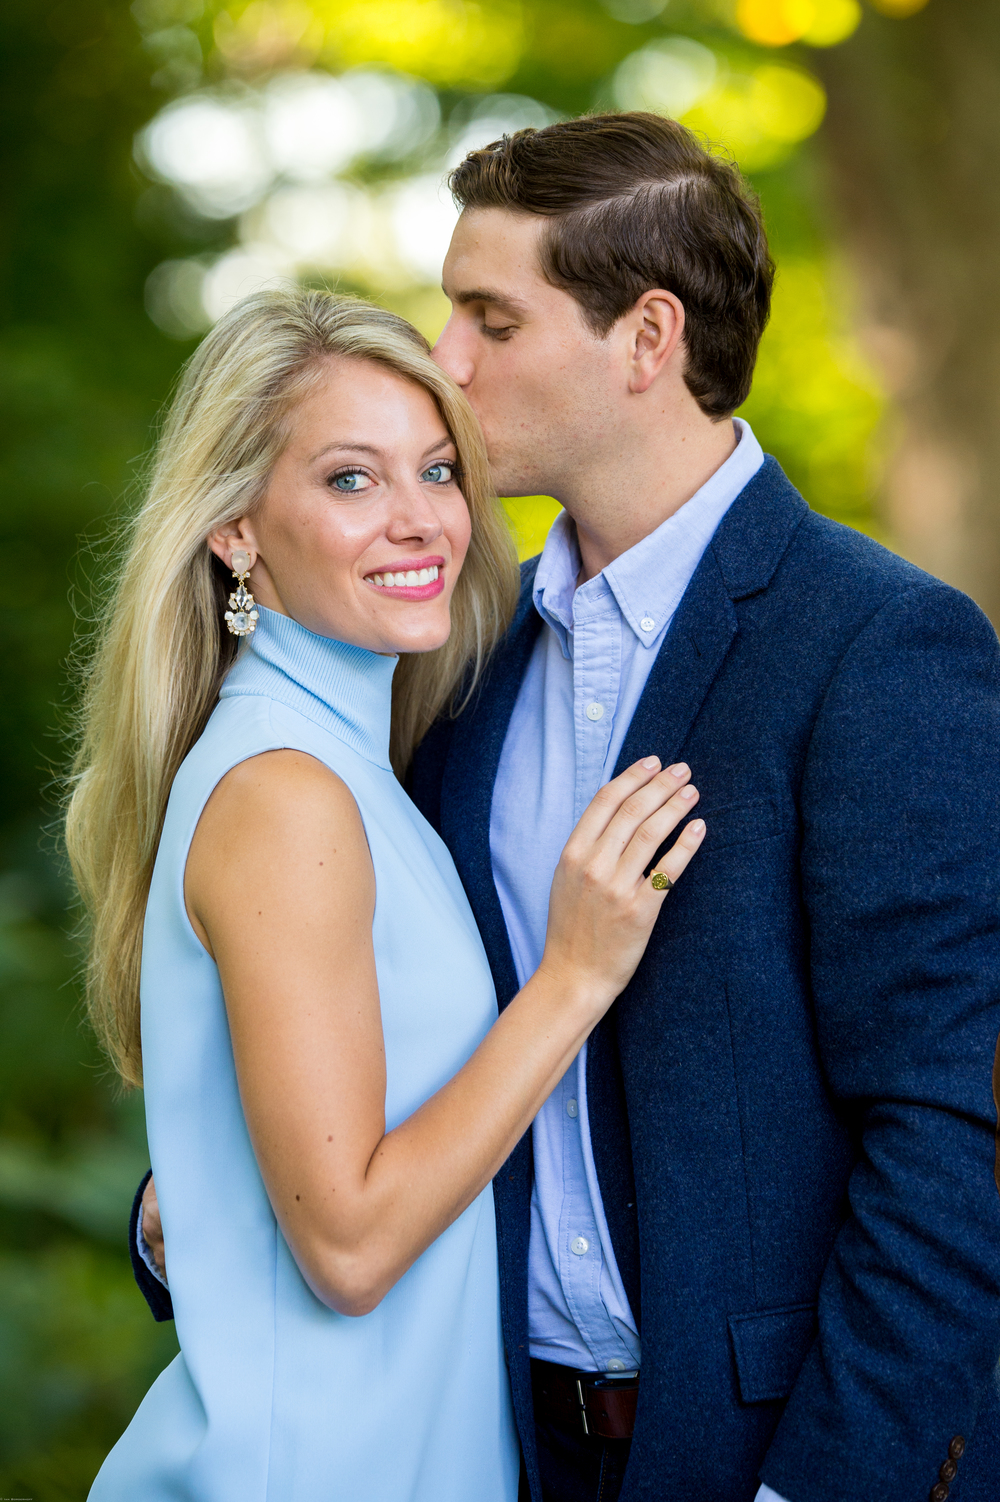 Christina Charlie Engagement-187.jpg